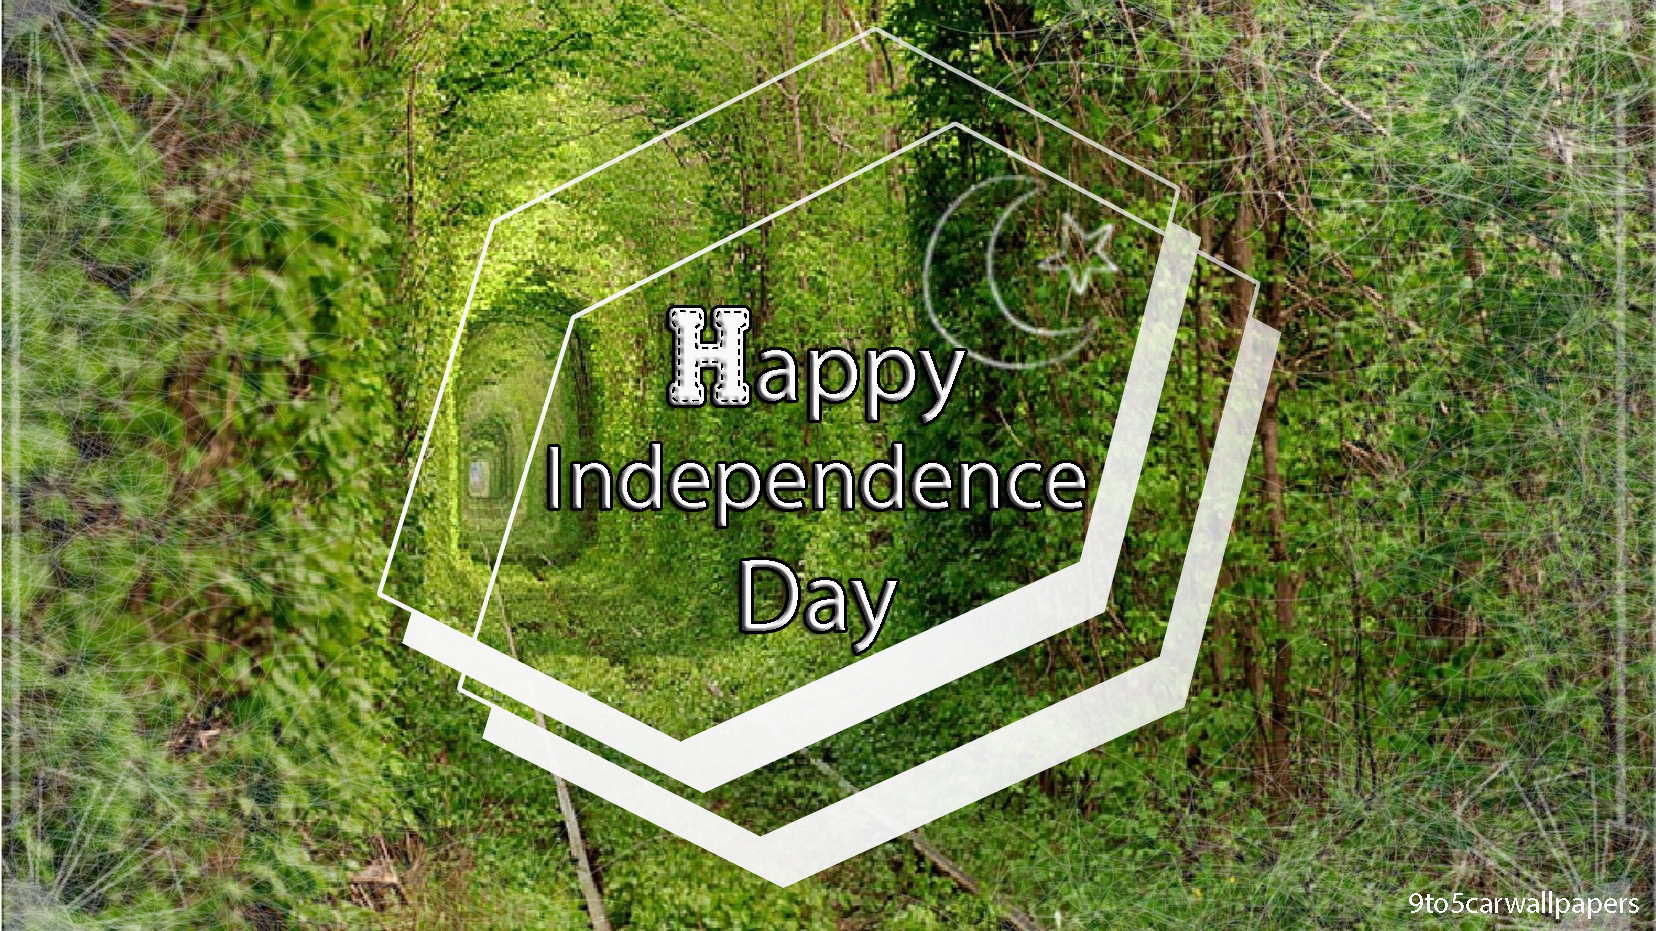 independence-day wallpaper-image-quotes-cards-posters-wishes